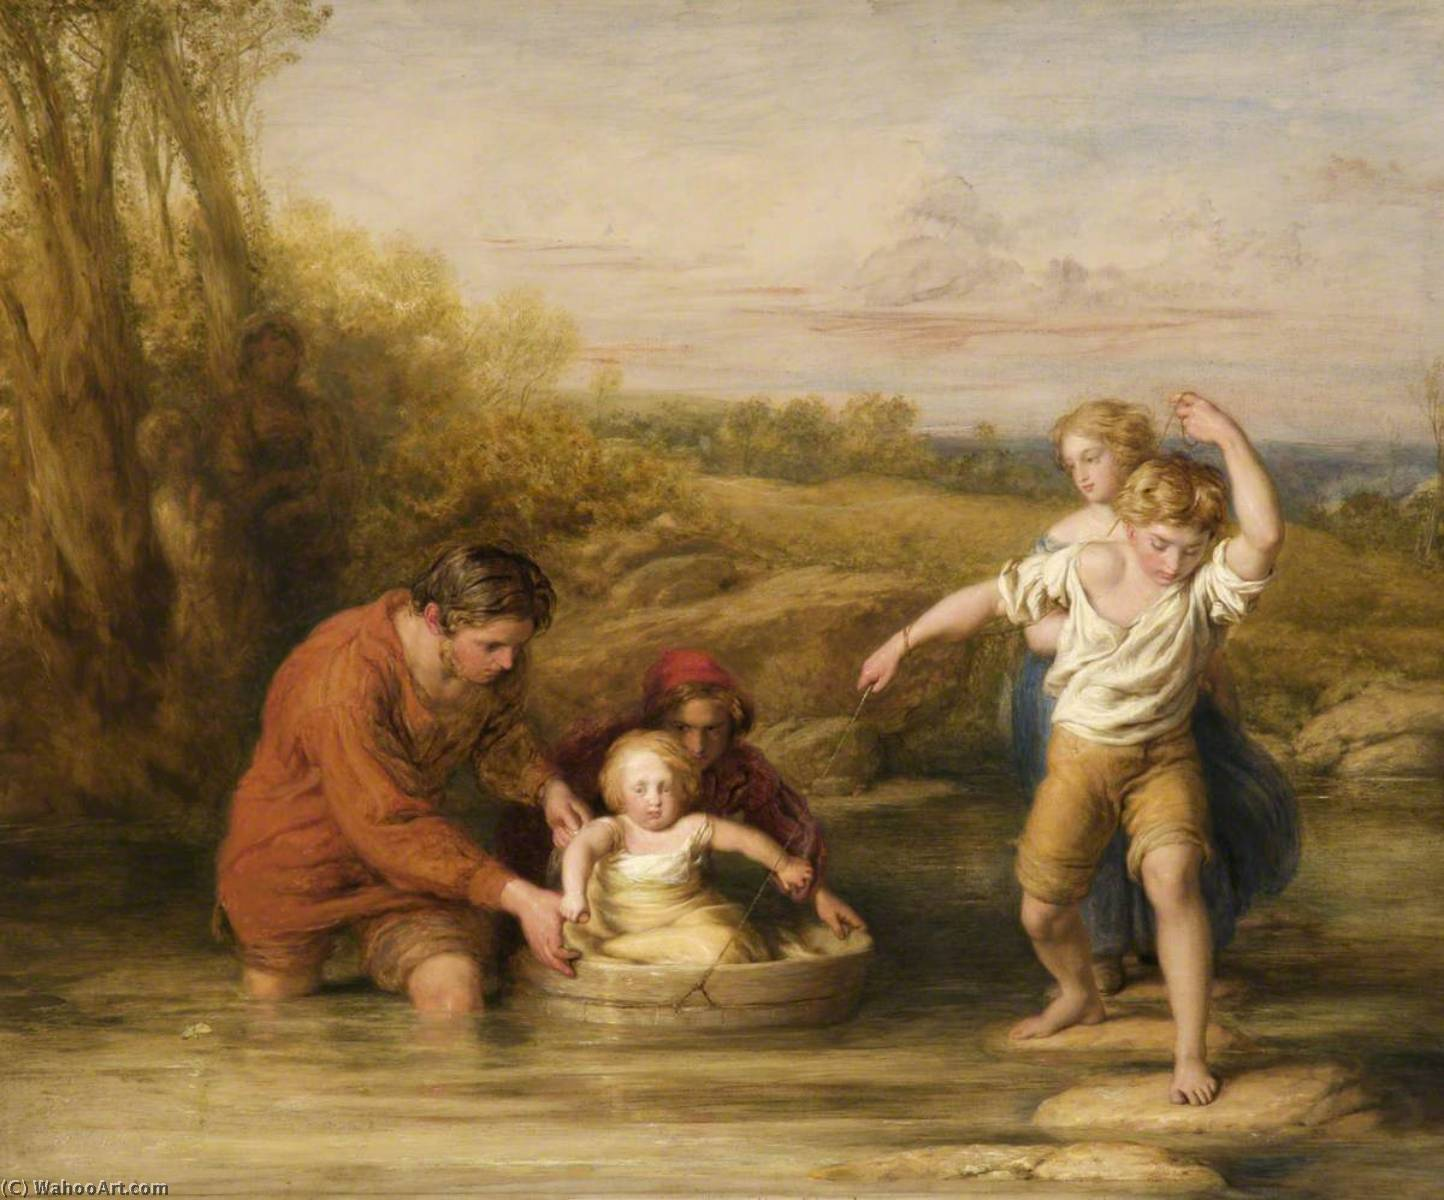 первый вояж , Масло на панели по William Mulready The Younger (1786-1863, Ireland)